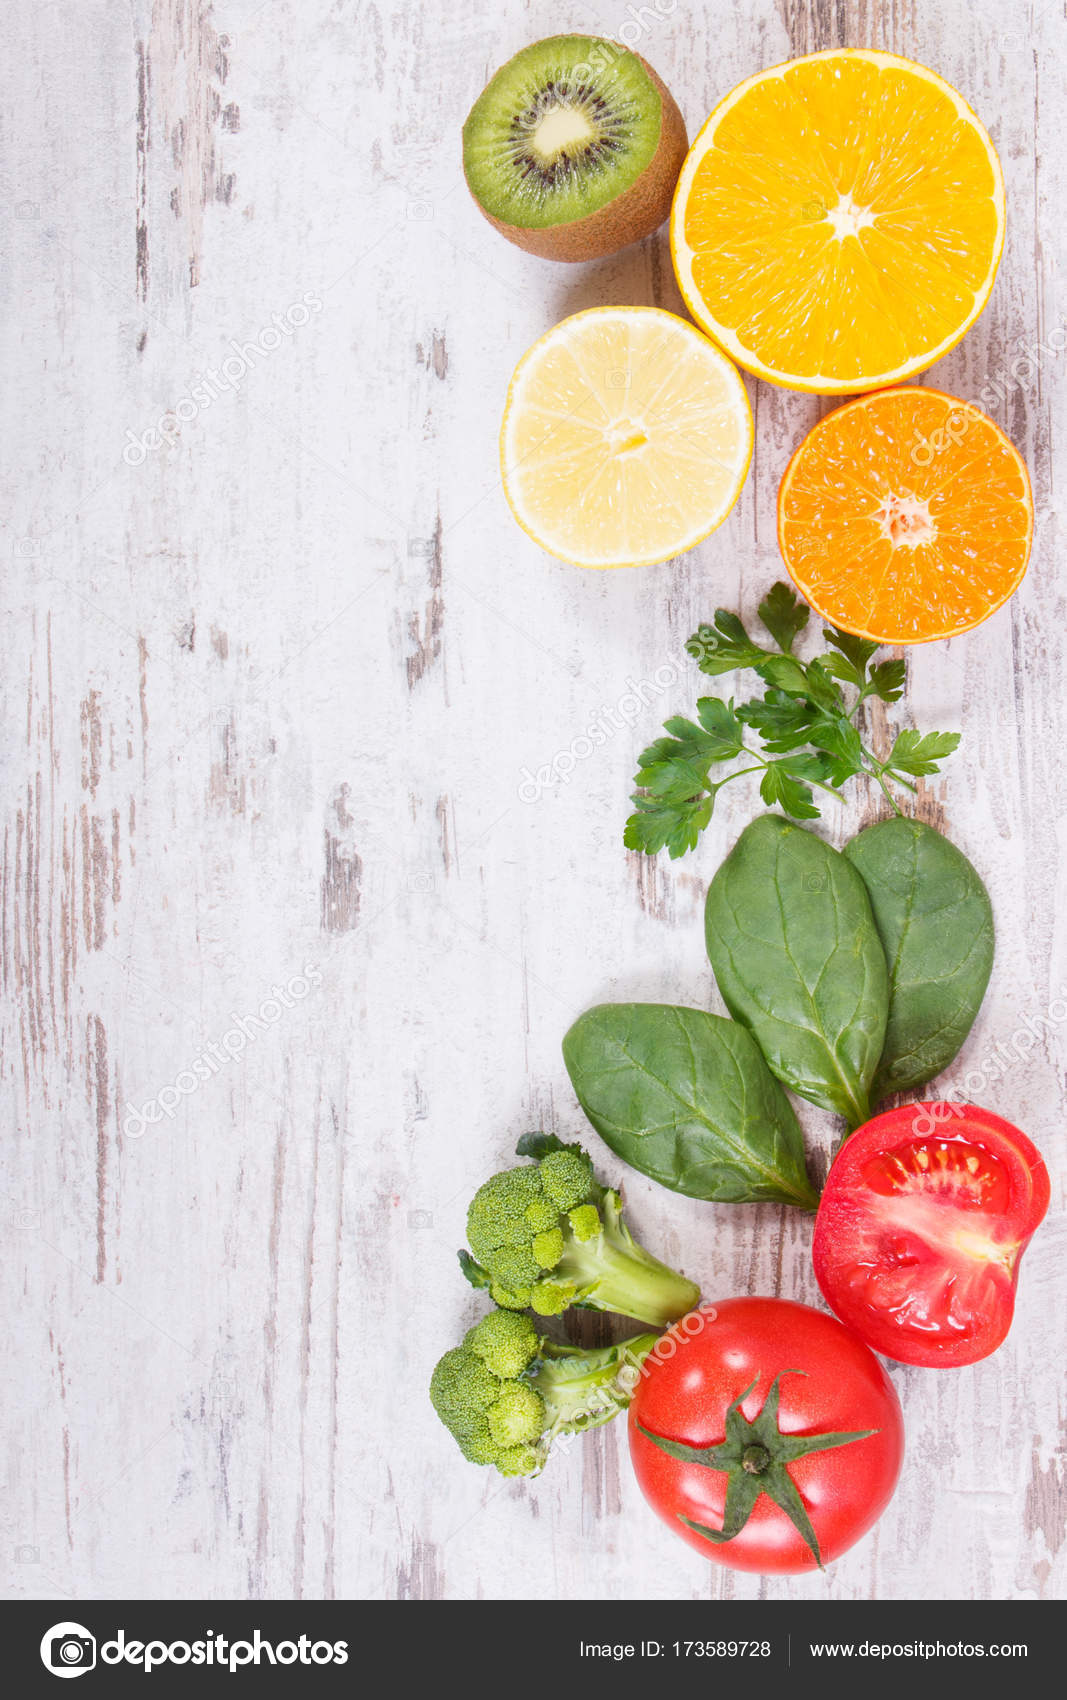 Fruits and vegetables containing vitamin c fiber and minerals fruits and vegetables containing vitamin c fiber and minerals strengthening immunity and healthy eating workwithnaturefo